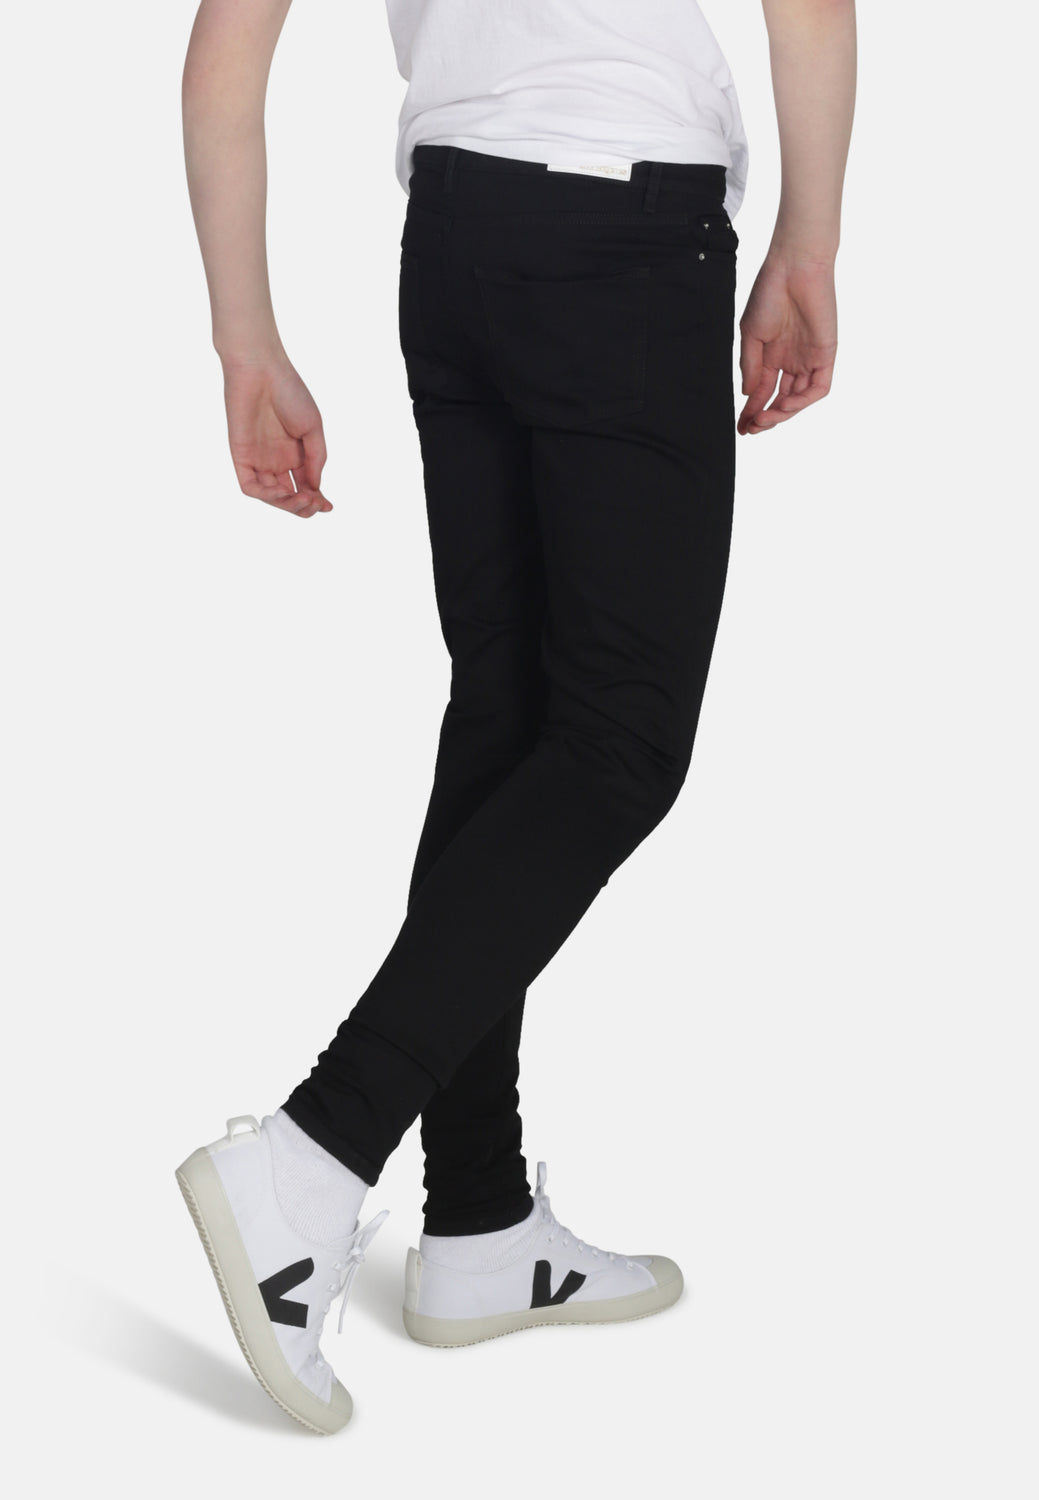 CODY // Recycled Organic Super Skinny Mid Rise Jeans in Black Jet - Monkee Genes Organic Jeans Denim - Organic Flex Men's Jeans Monkee Genes Official  Monkee Genes Official